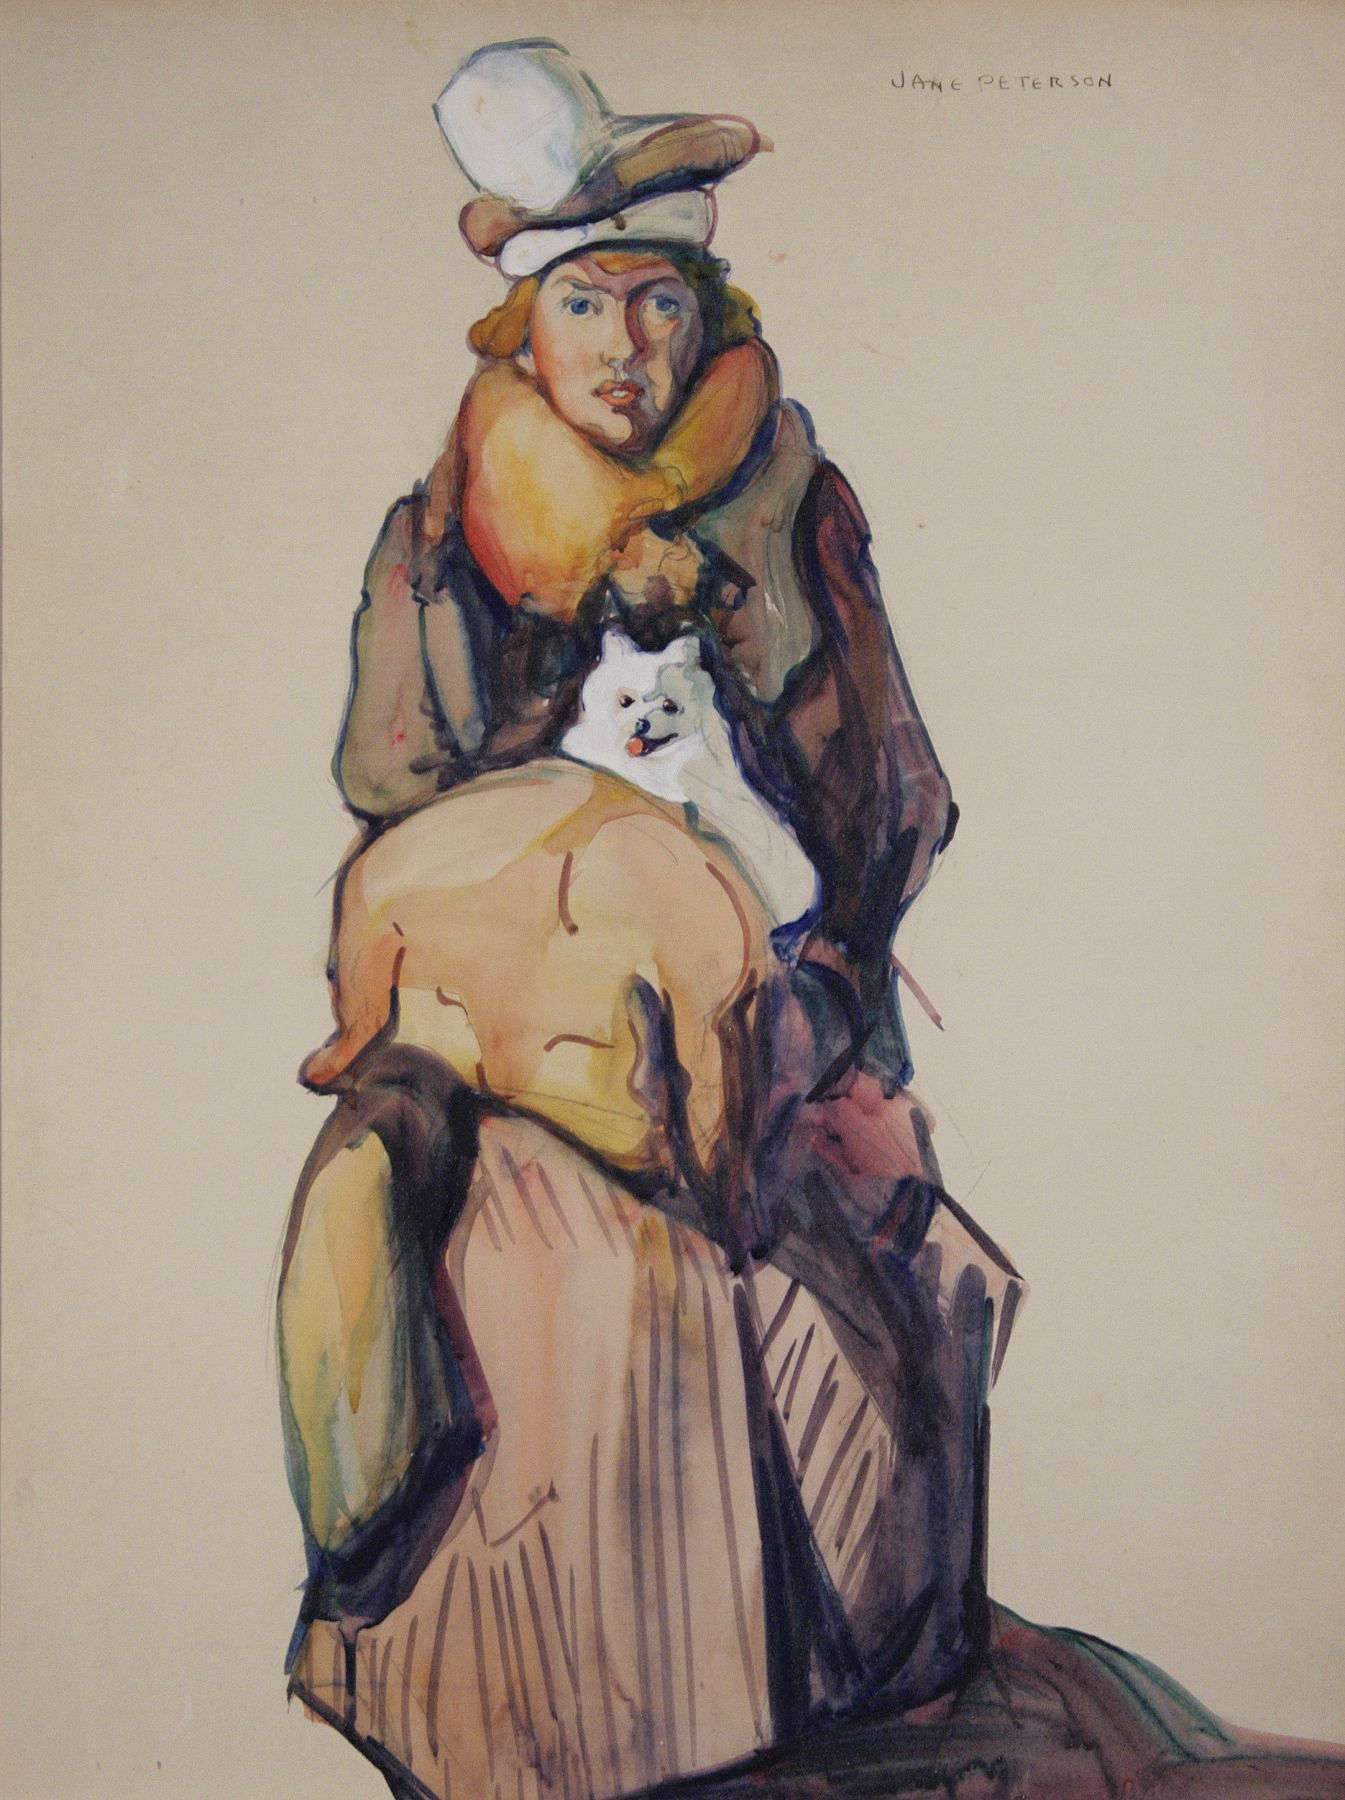 Jane Peterson, Self-Portrait with Skippy (SOLD), nd, watercolor and gouache on paper, 24 x 18 inches